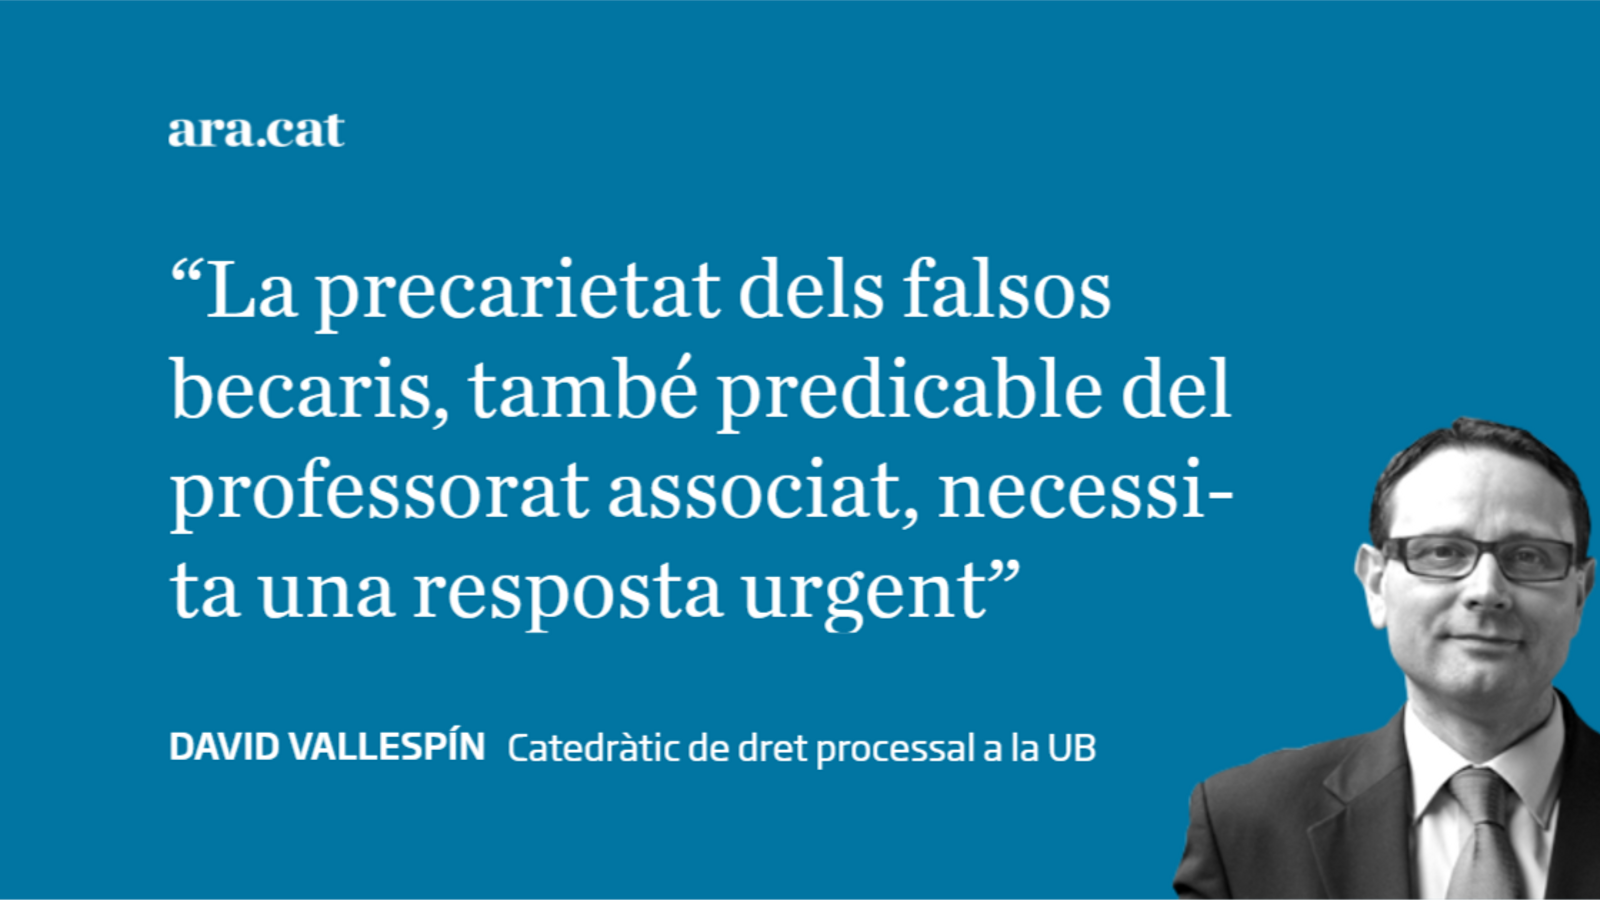 Falsos becaris a la universitat?